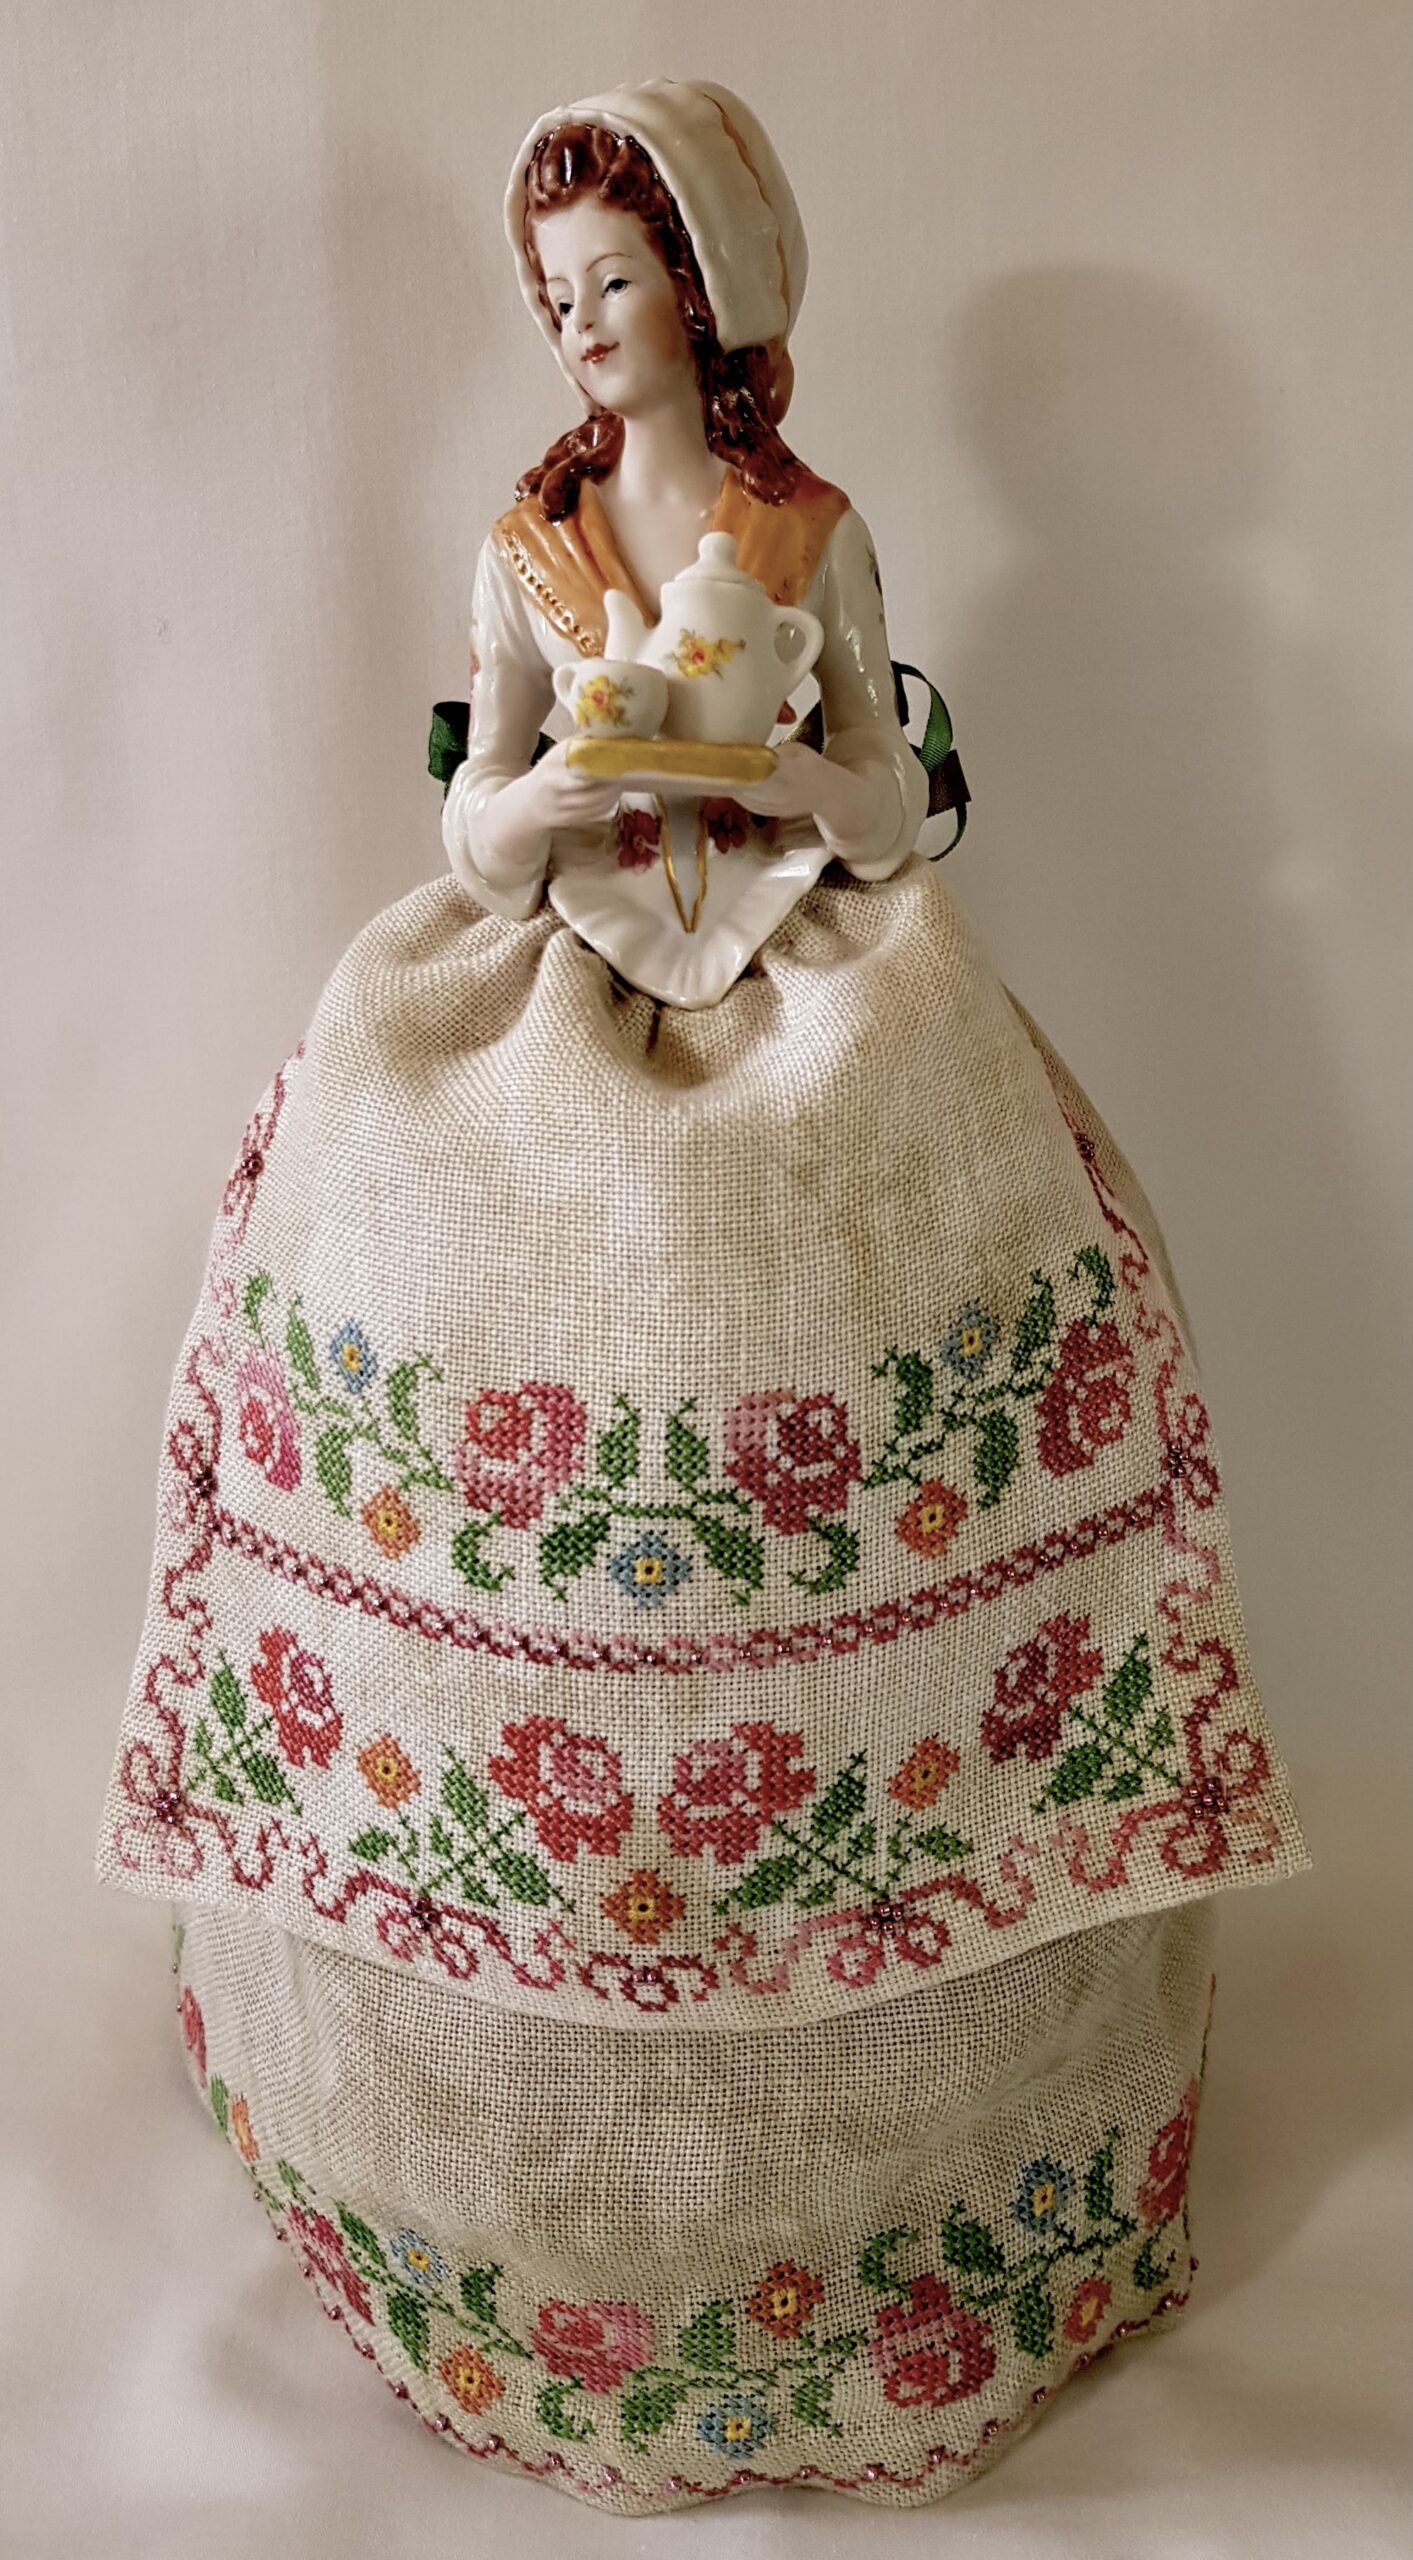 the chocolate lady porcelain half doll with stitched skirt by giulia punti antichi